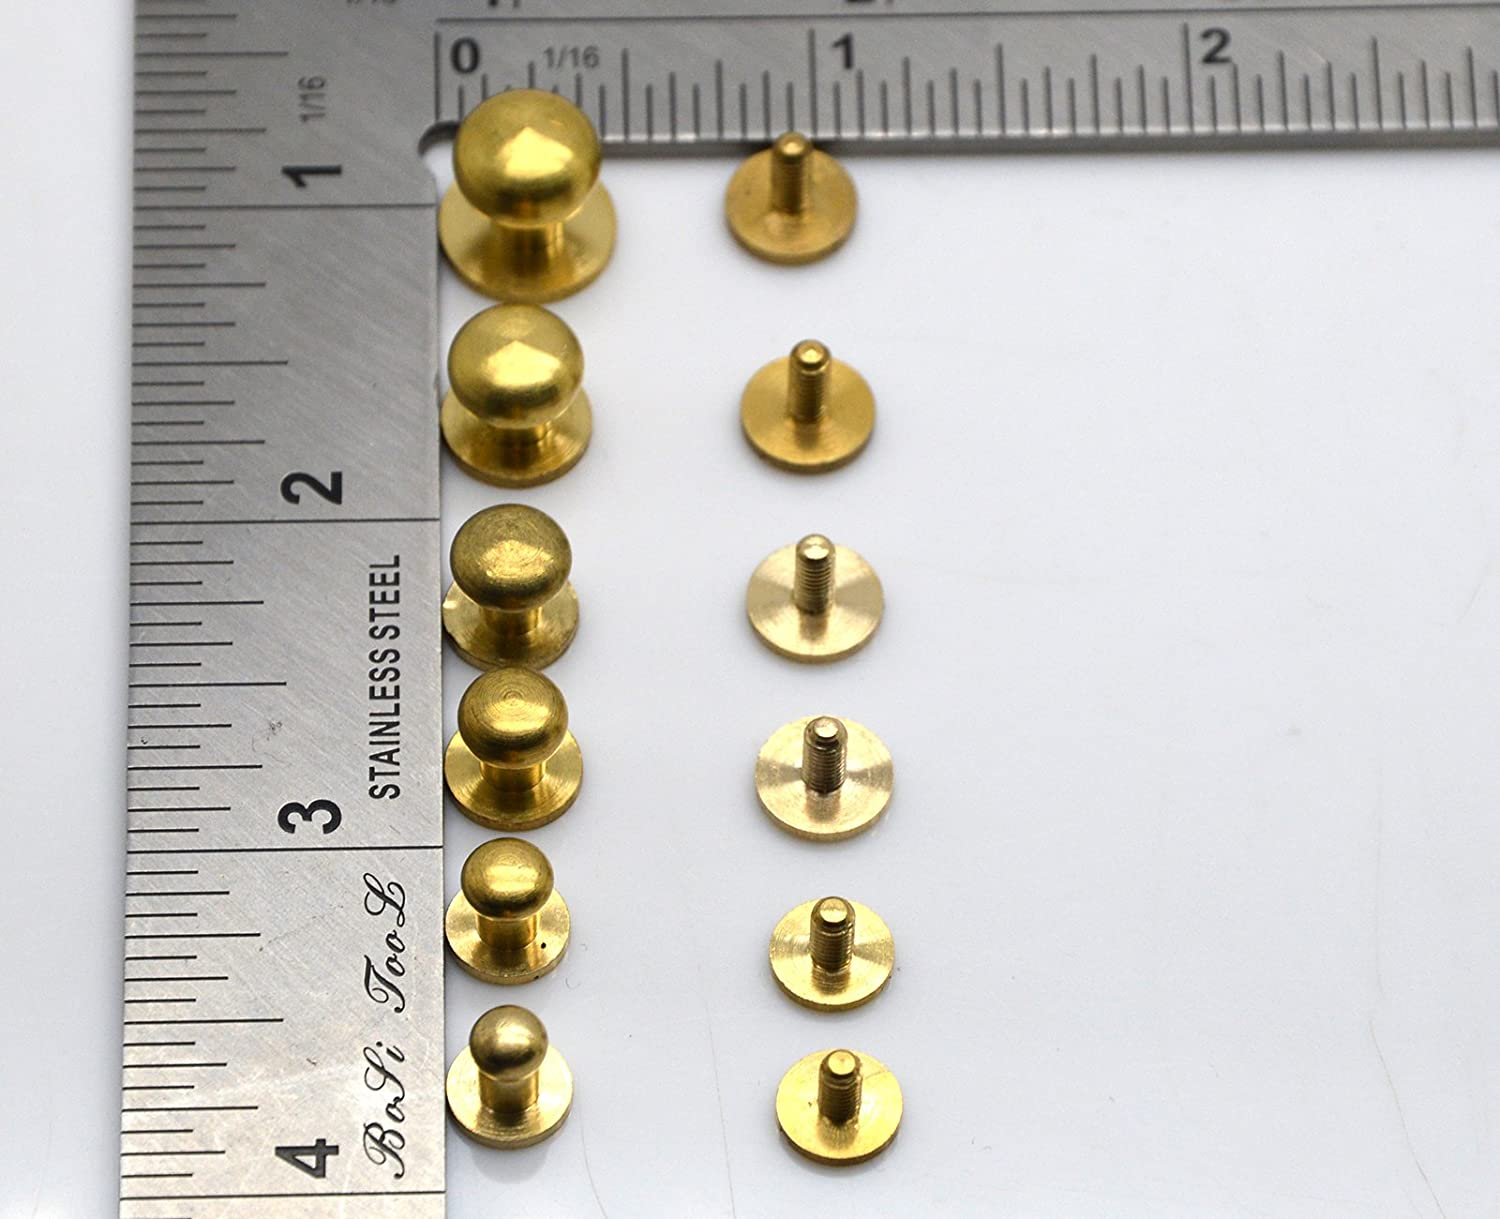 Okones Pack of 24,2//5 1//3 3//8 2//7 1//4 1//5 Solid Brass Leathercraft Studs Buttons Cap Rivets Nailheads Stud Spike DIY Purse Handbag 2//5+1//3+3//8+2//7+1//4+1//5